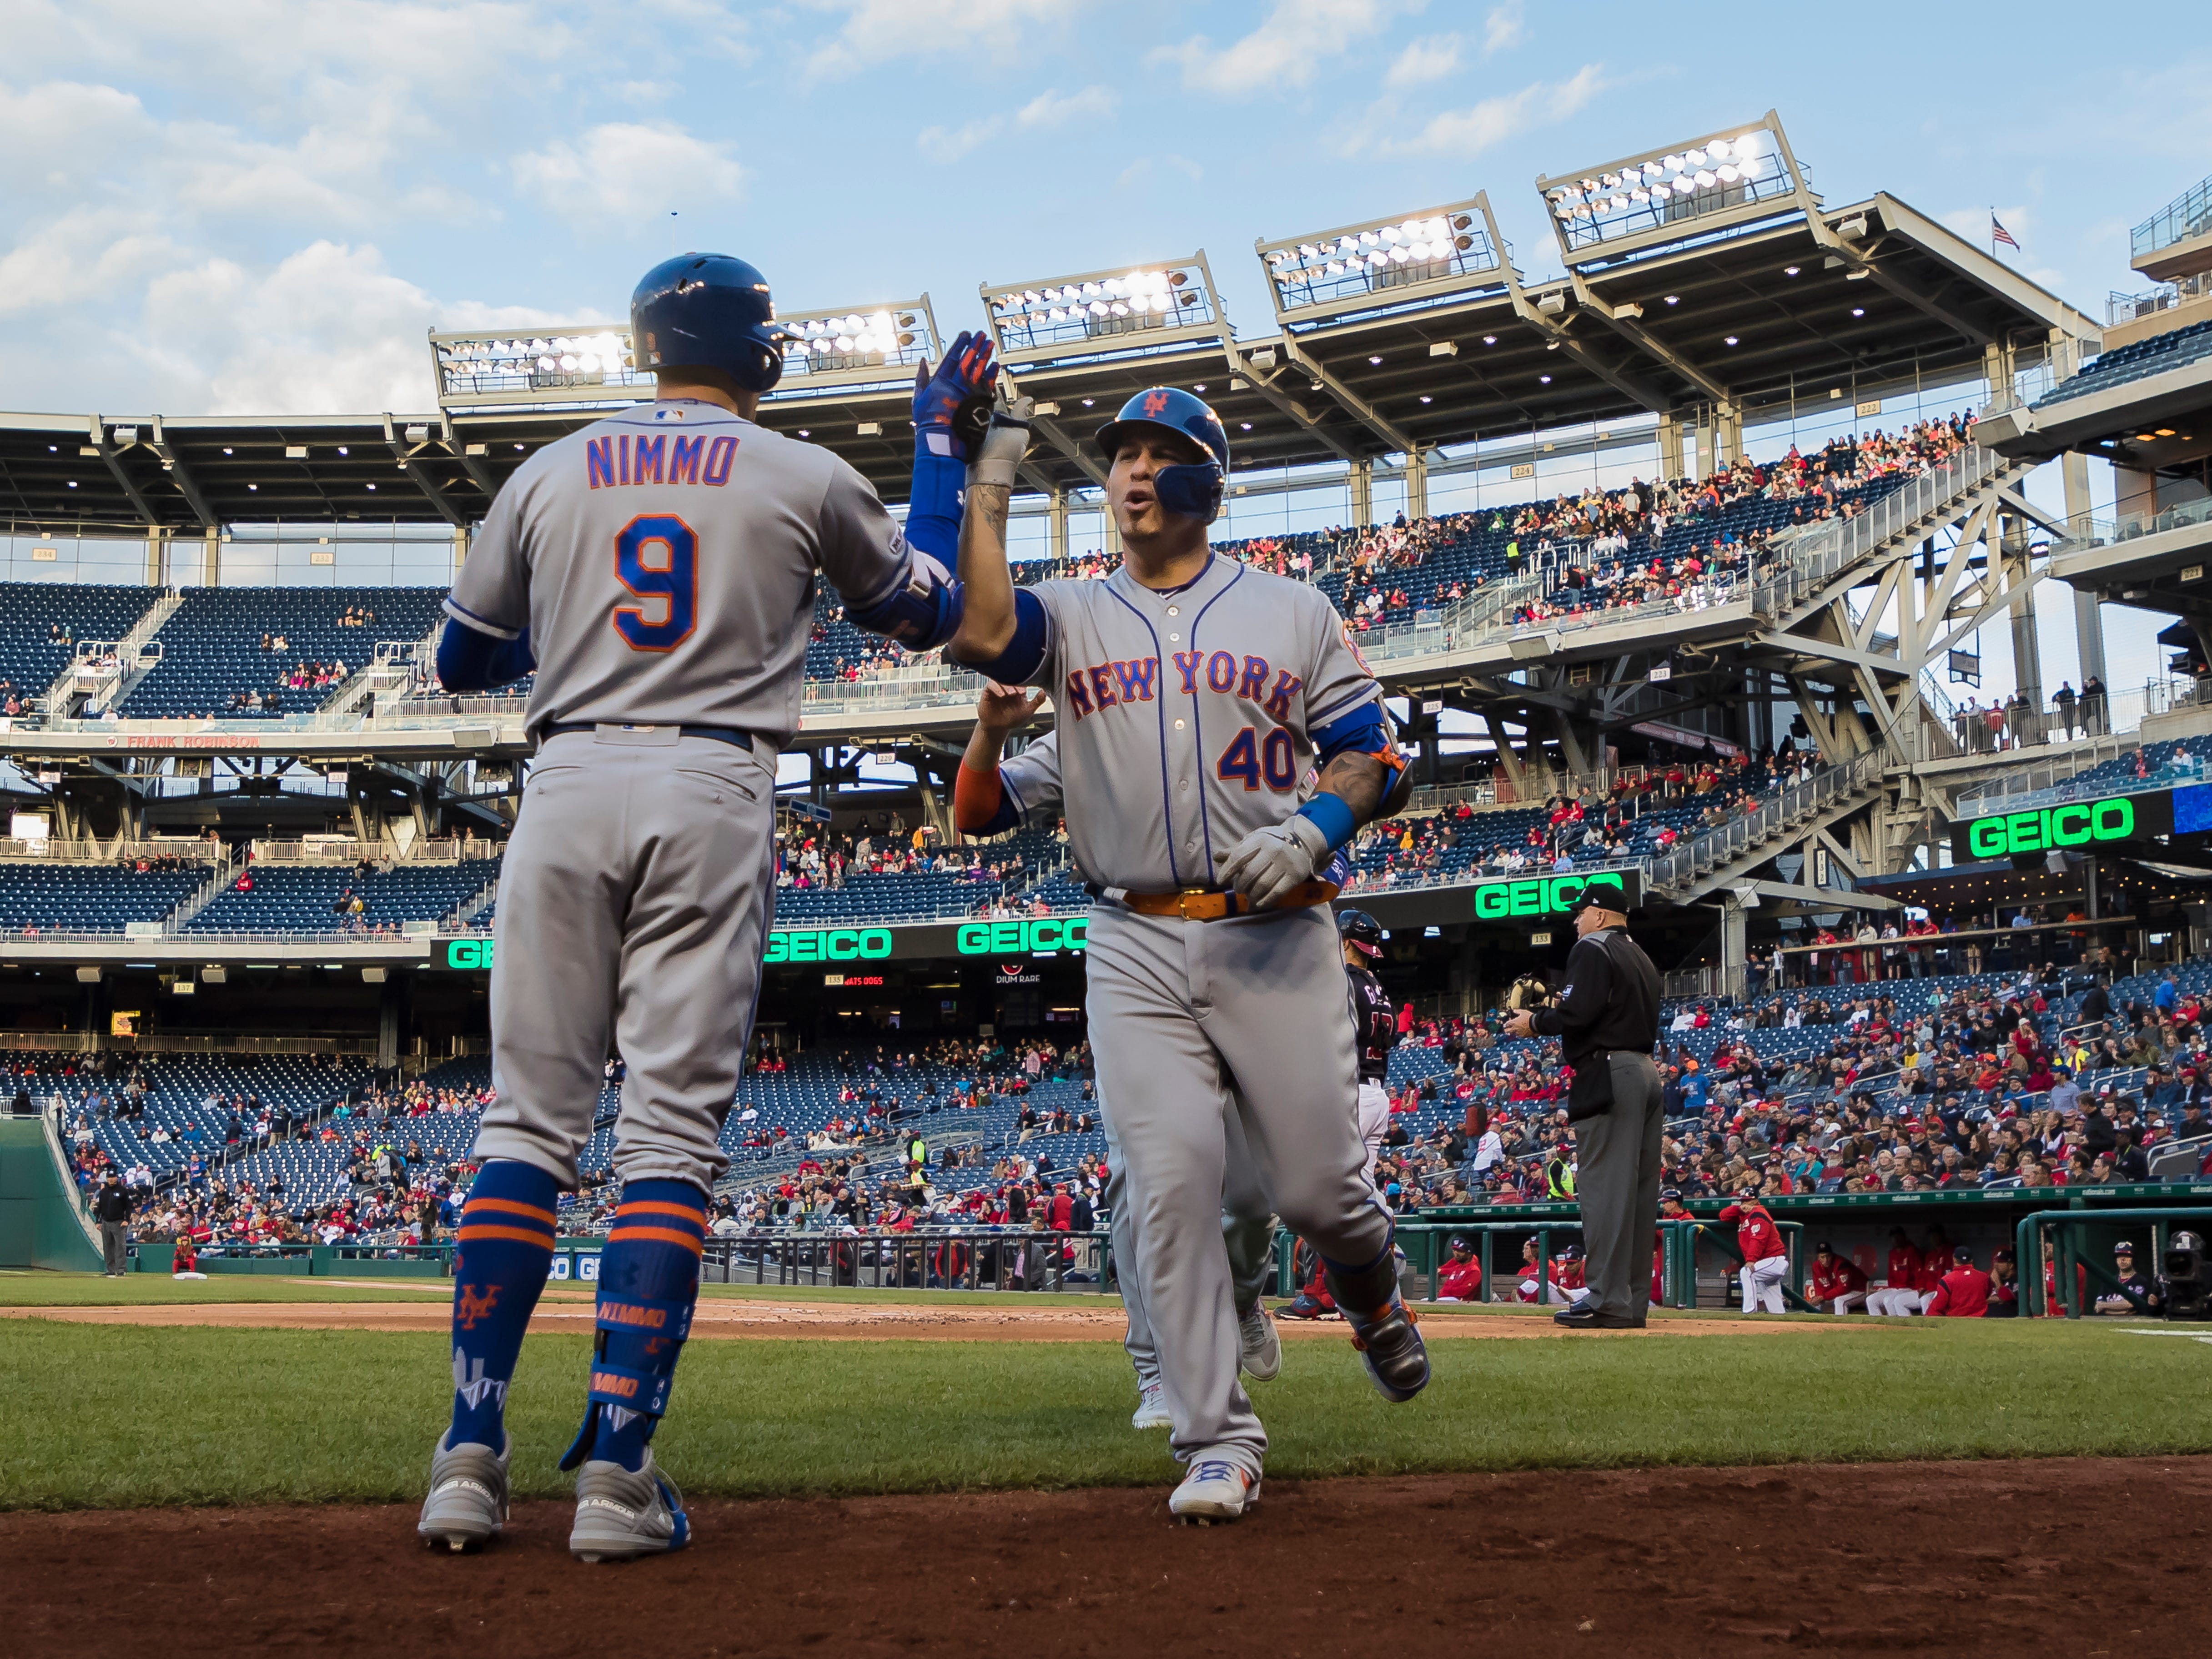 Wilson Ramos #40 of the New York Mets celebrates with Brandon Nimmo #9 after hitting a grand slam against the Washington Nationals during the first inning at Nationals Park on May 14, 2019 in Washington, DC.